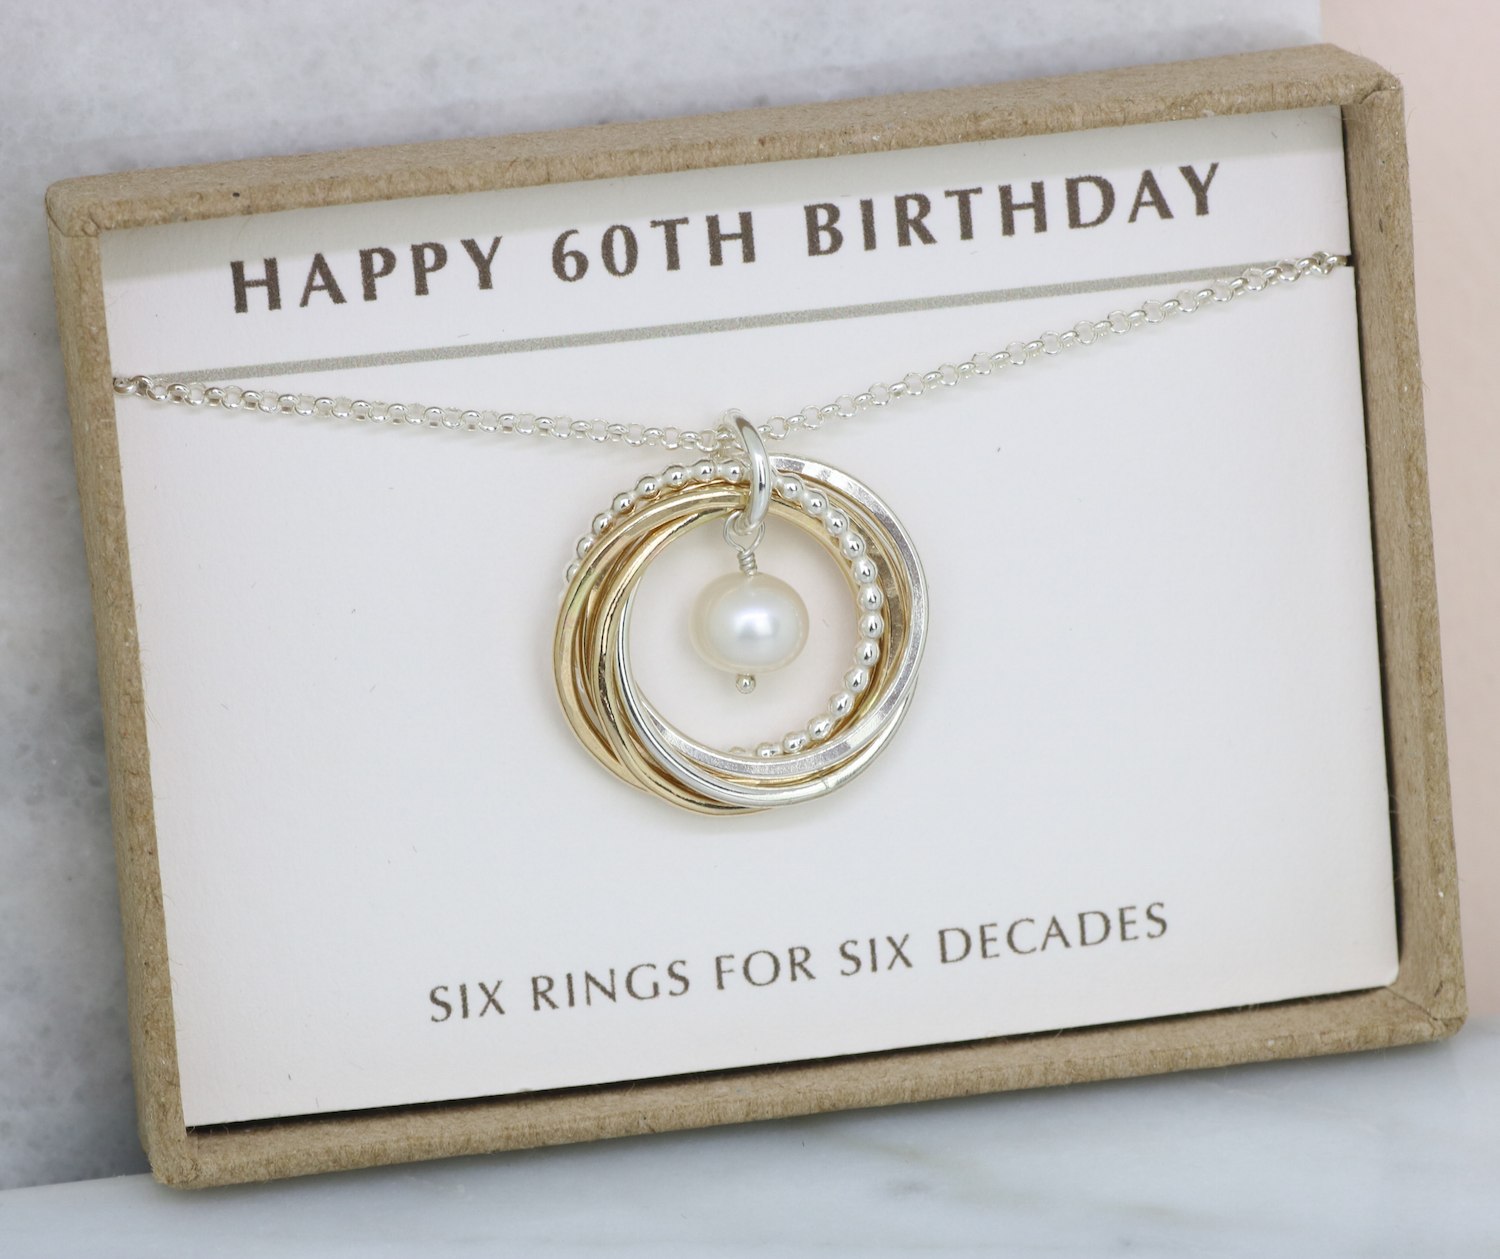 60th birthday gift idea, june birthday gift, pearl necklace for 60th